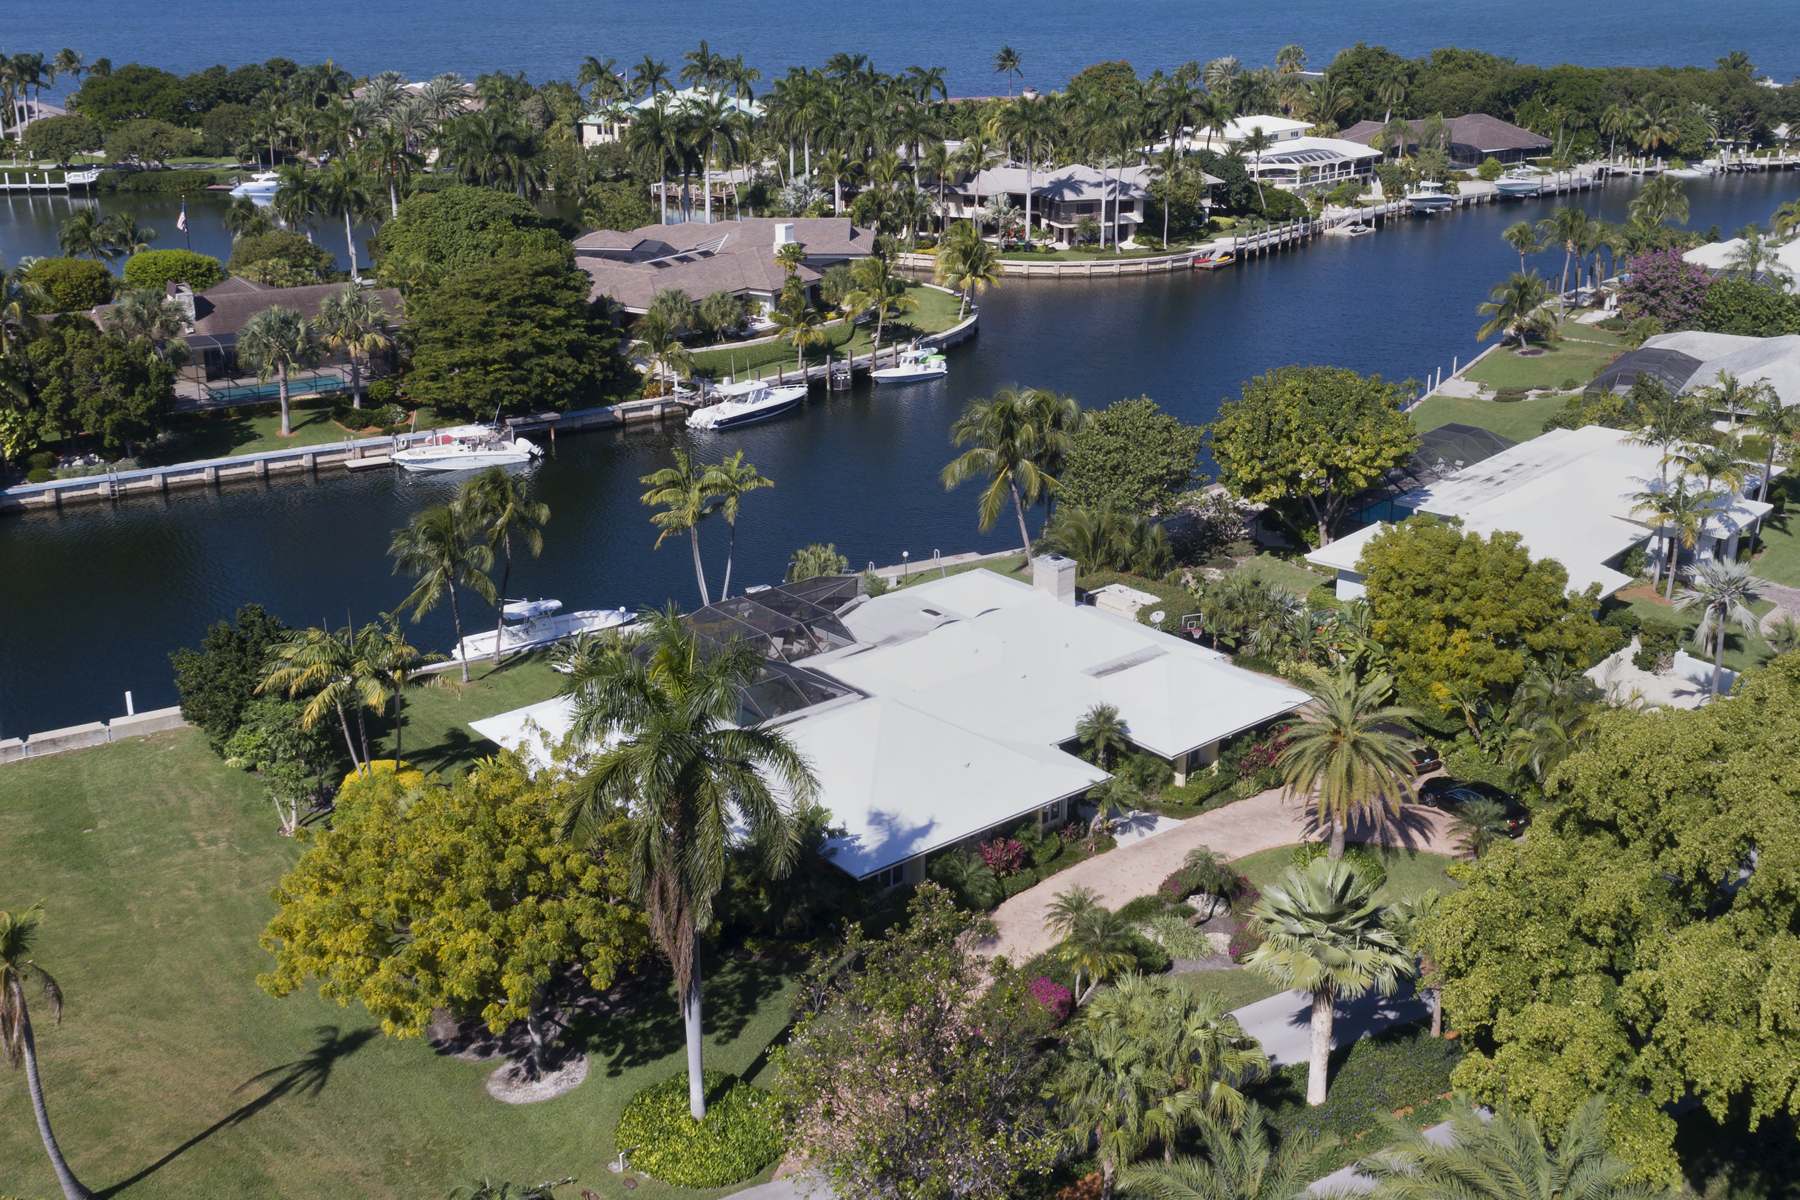 Vivienda unifamiliar por un Venta en Charming Waterfront Home at Ocean Reef 17 Sunset Cay Road, Ocean Reef Community, Key Largo, Florida, 33037 Estados Unidos